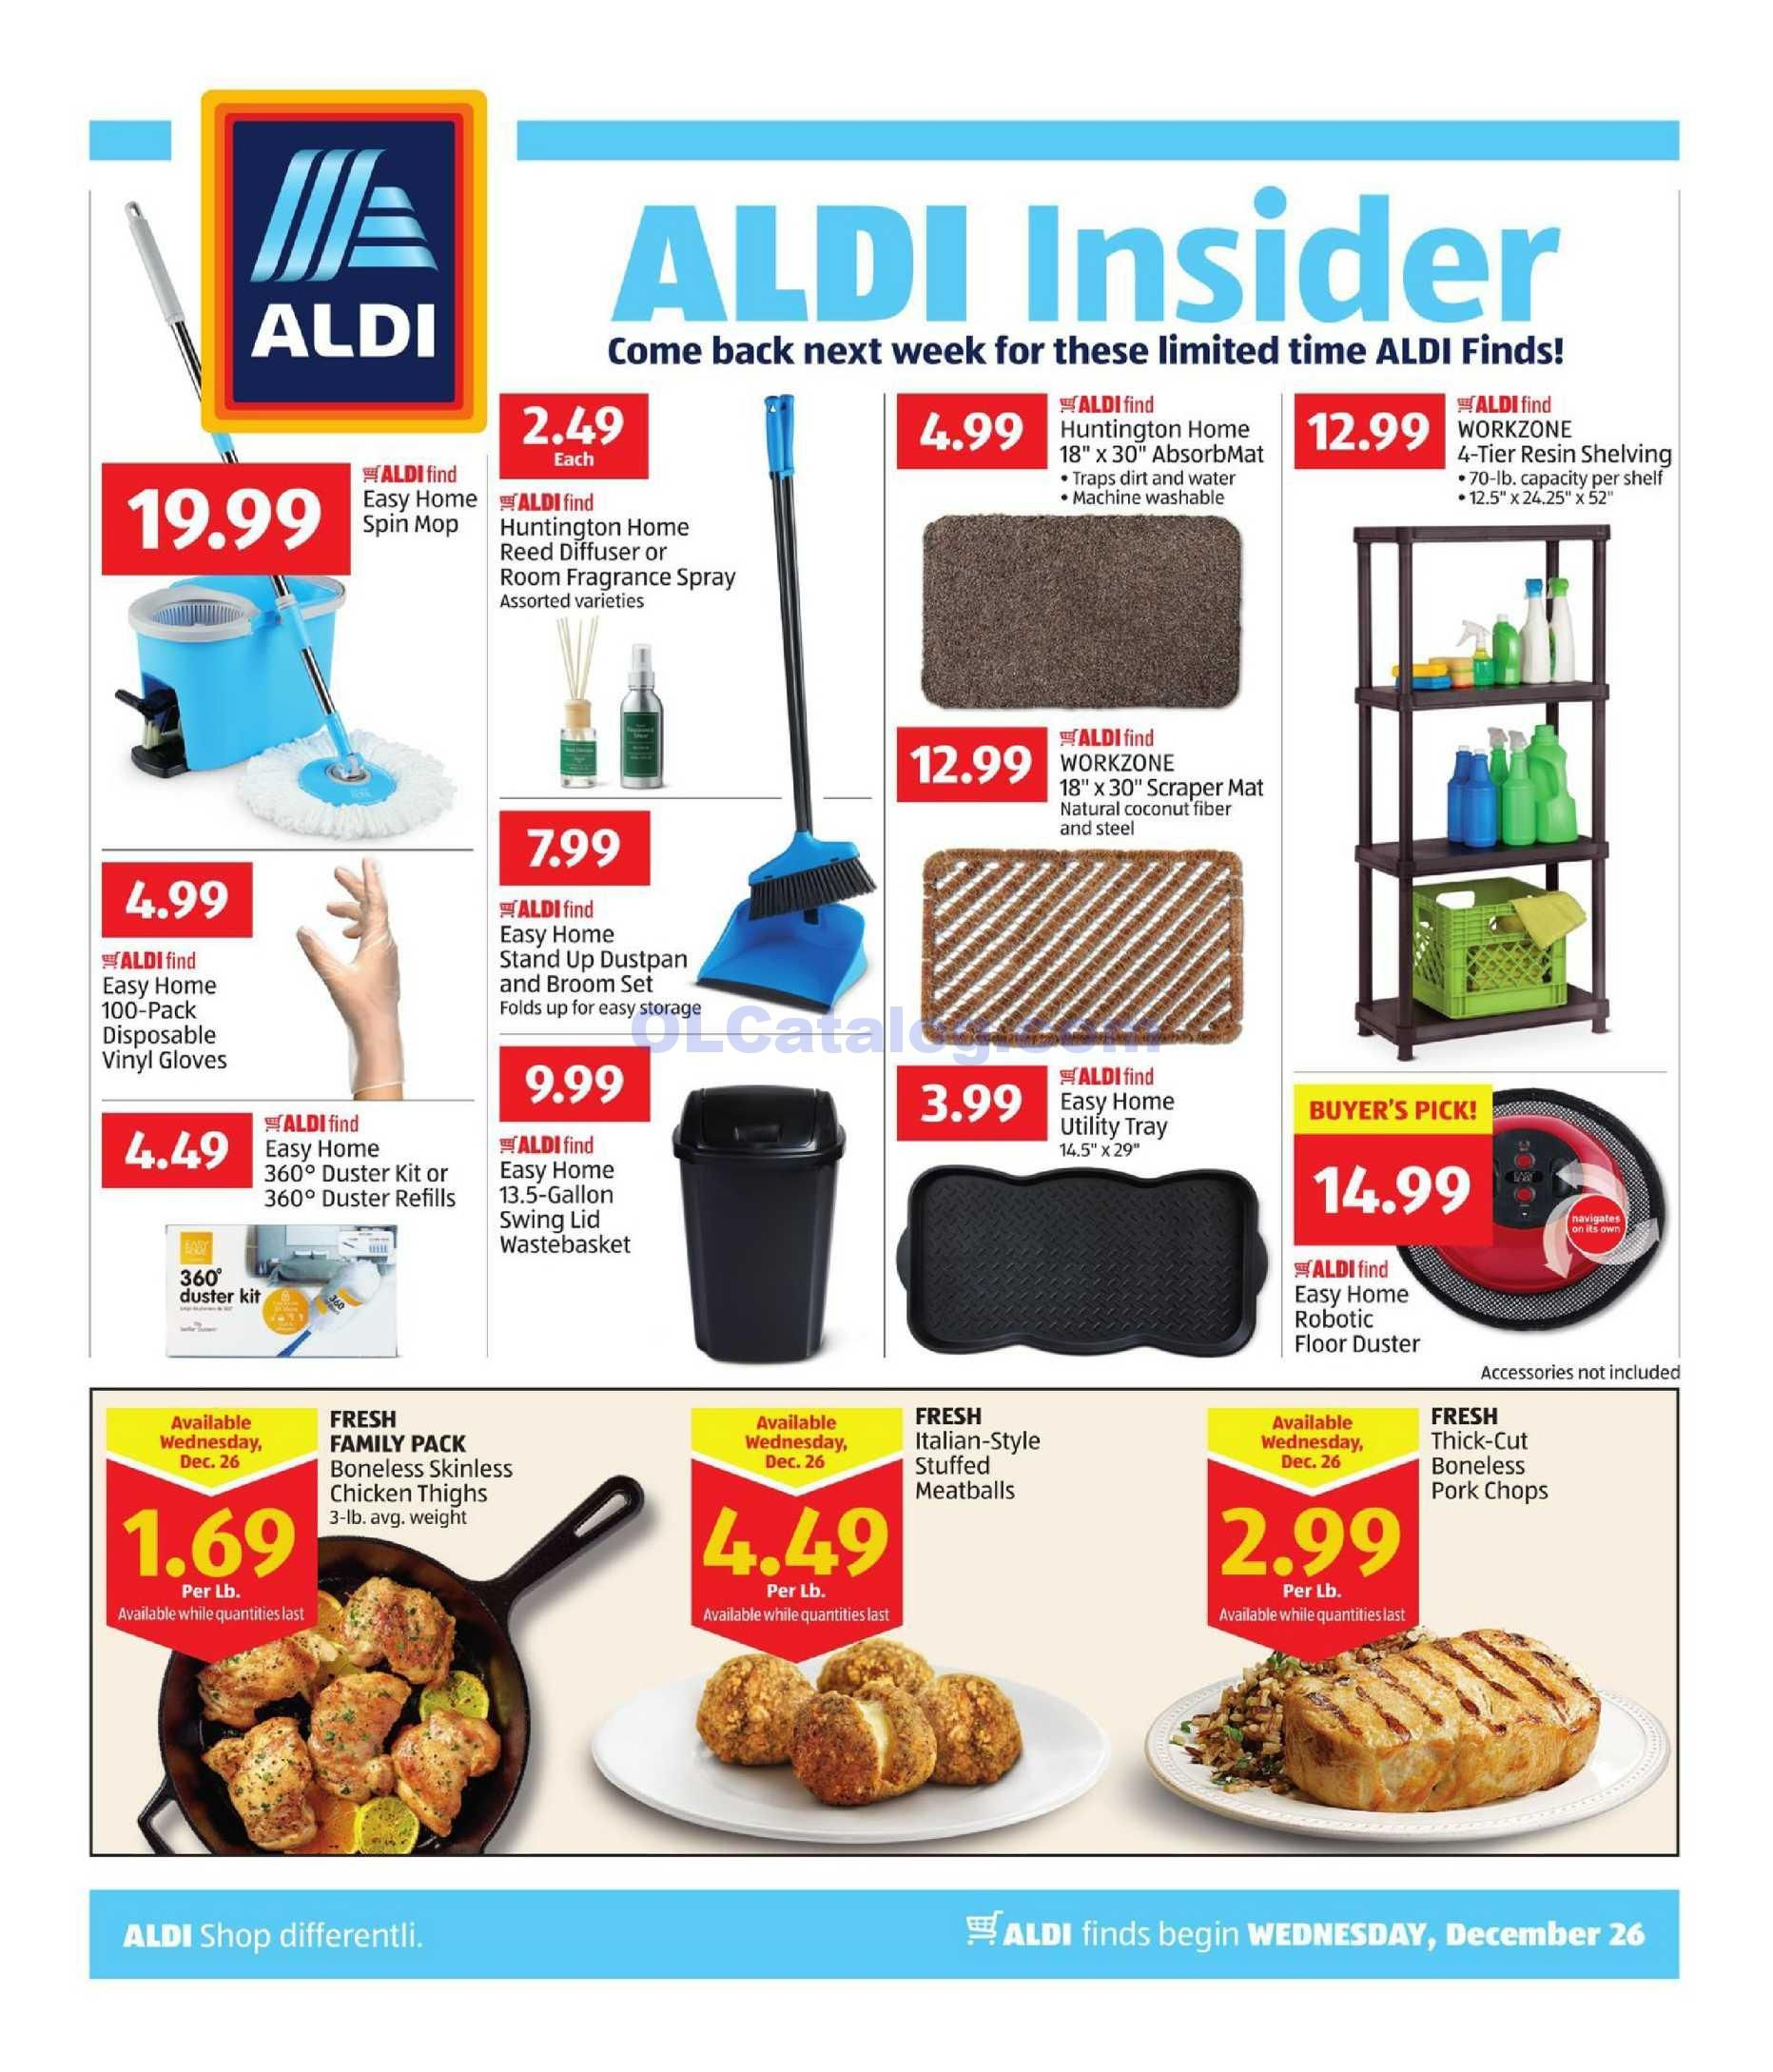 Aldi In Store Ad December 26 2018 January 1 2019 View The Latest Flyer And Weekly Circular Ad For Aldi Here Likewise Aldi Grocery Savings Digital Coupons